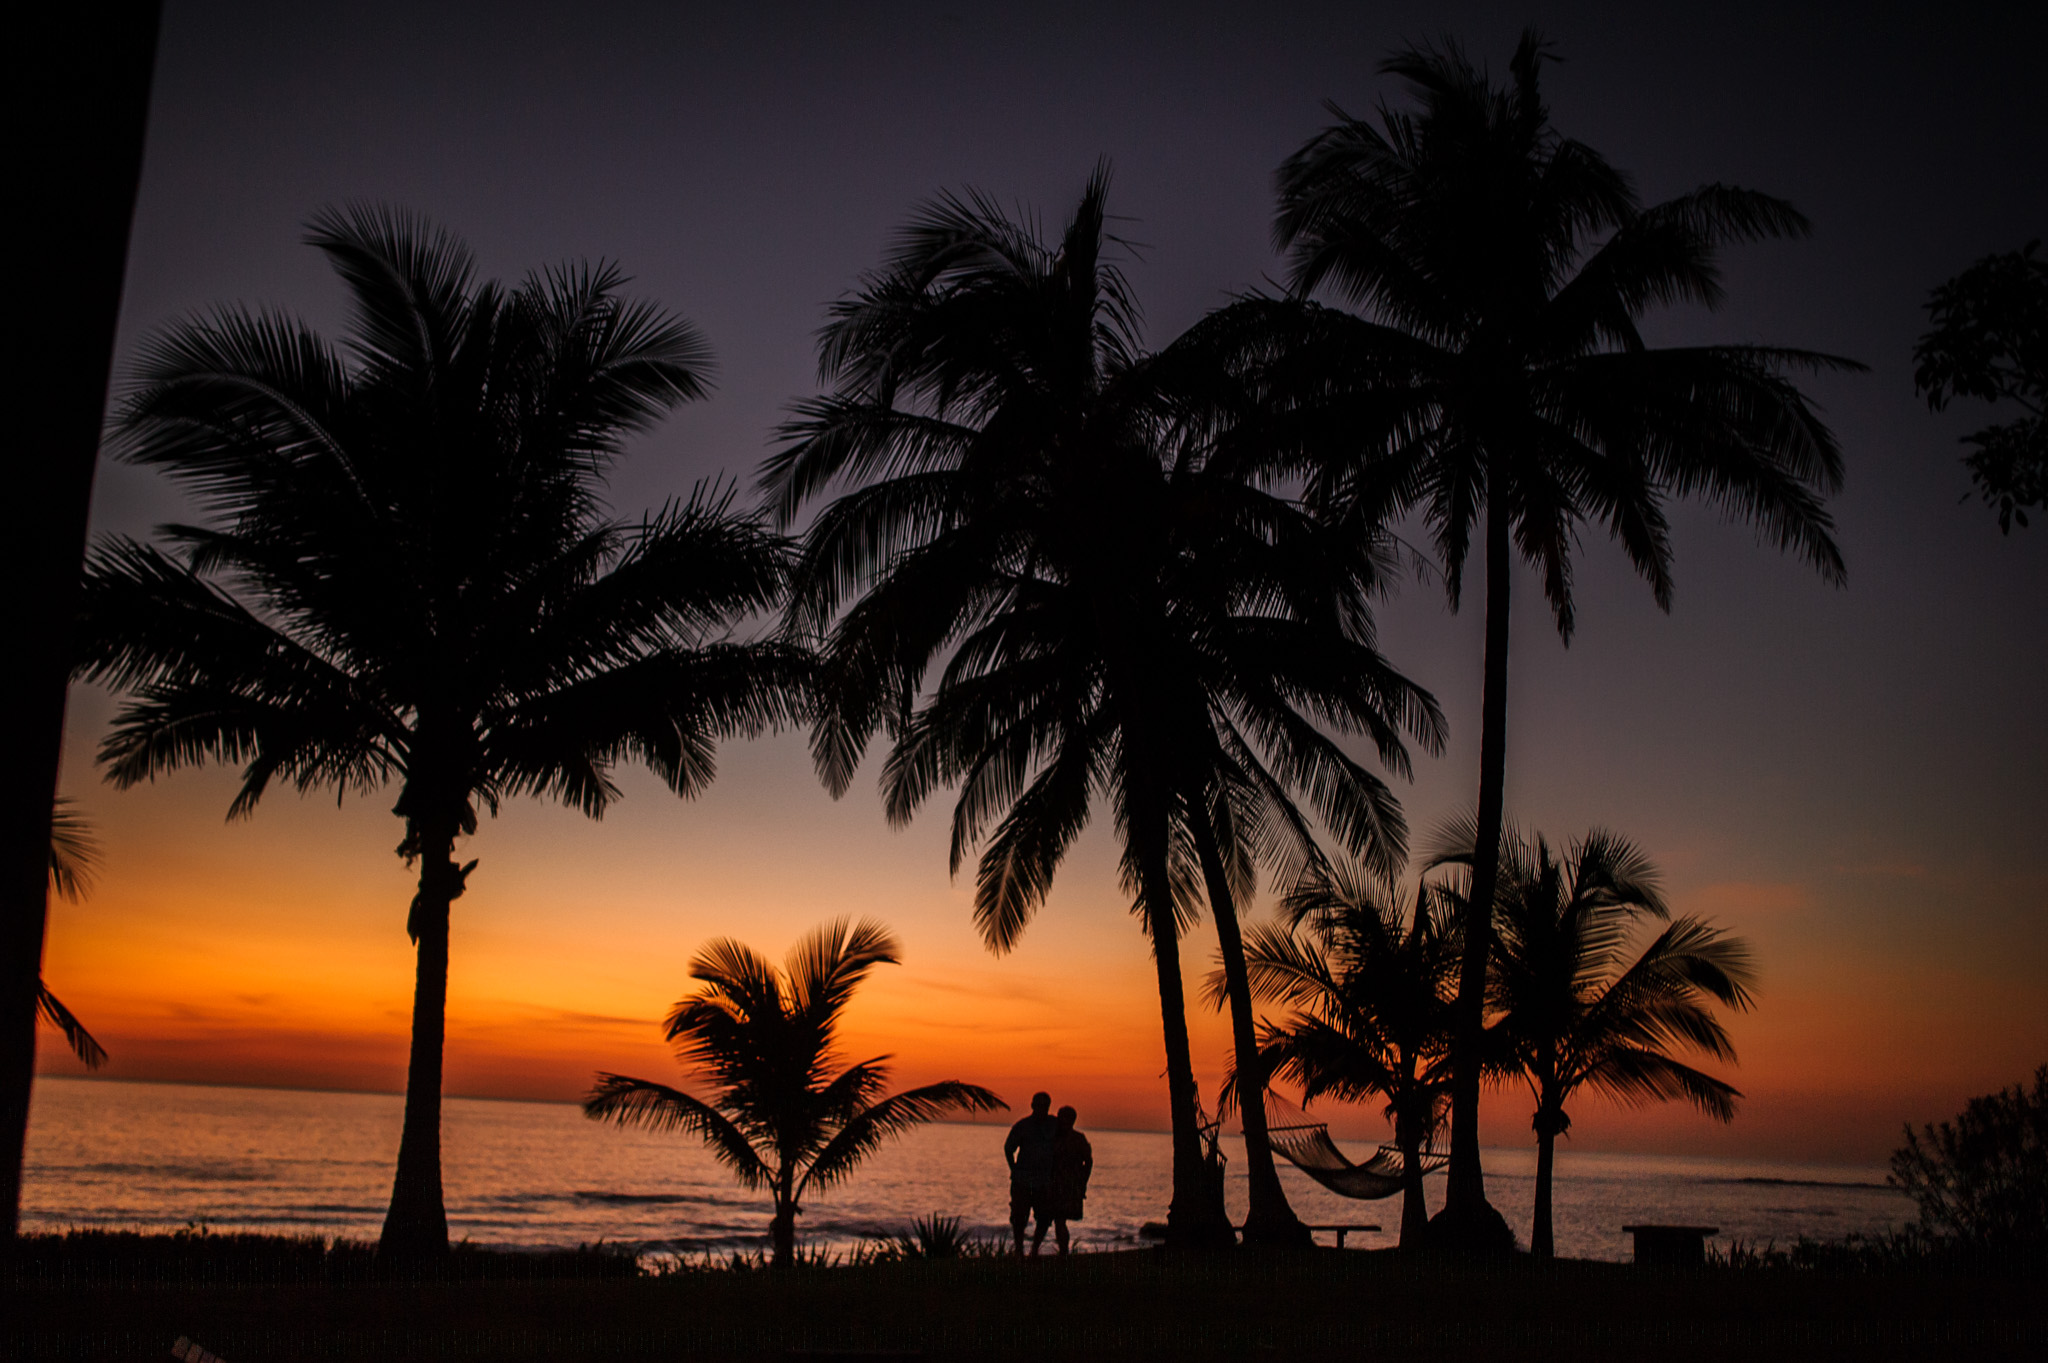 Palms trees at dusk on Junquillal Beach